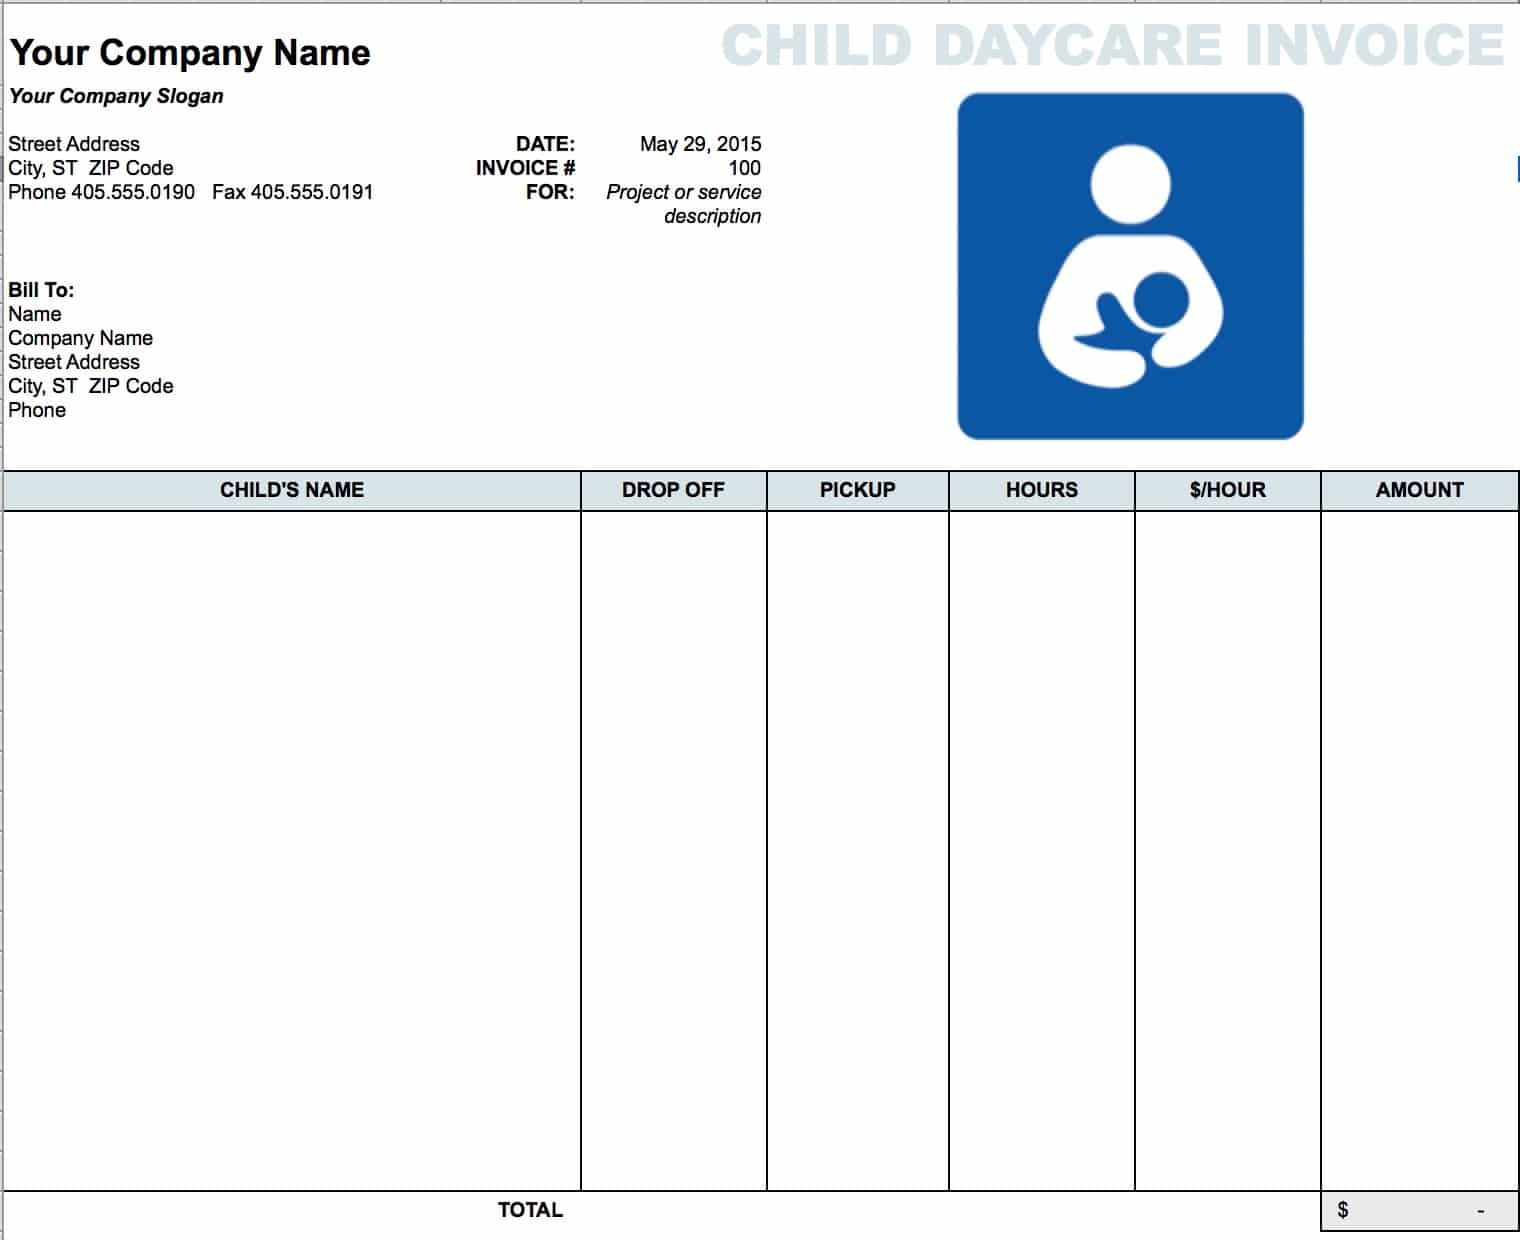 Free Daycare Child Invoice Template Excel PDF Word Doc - Invoice example word for service business